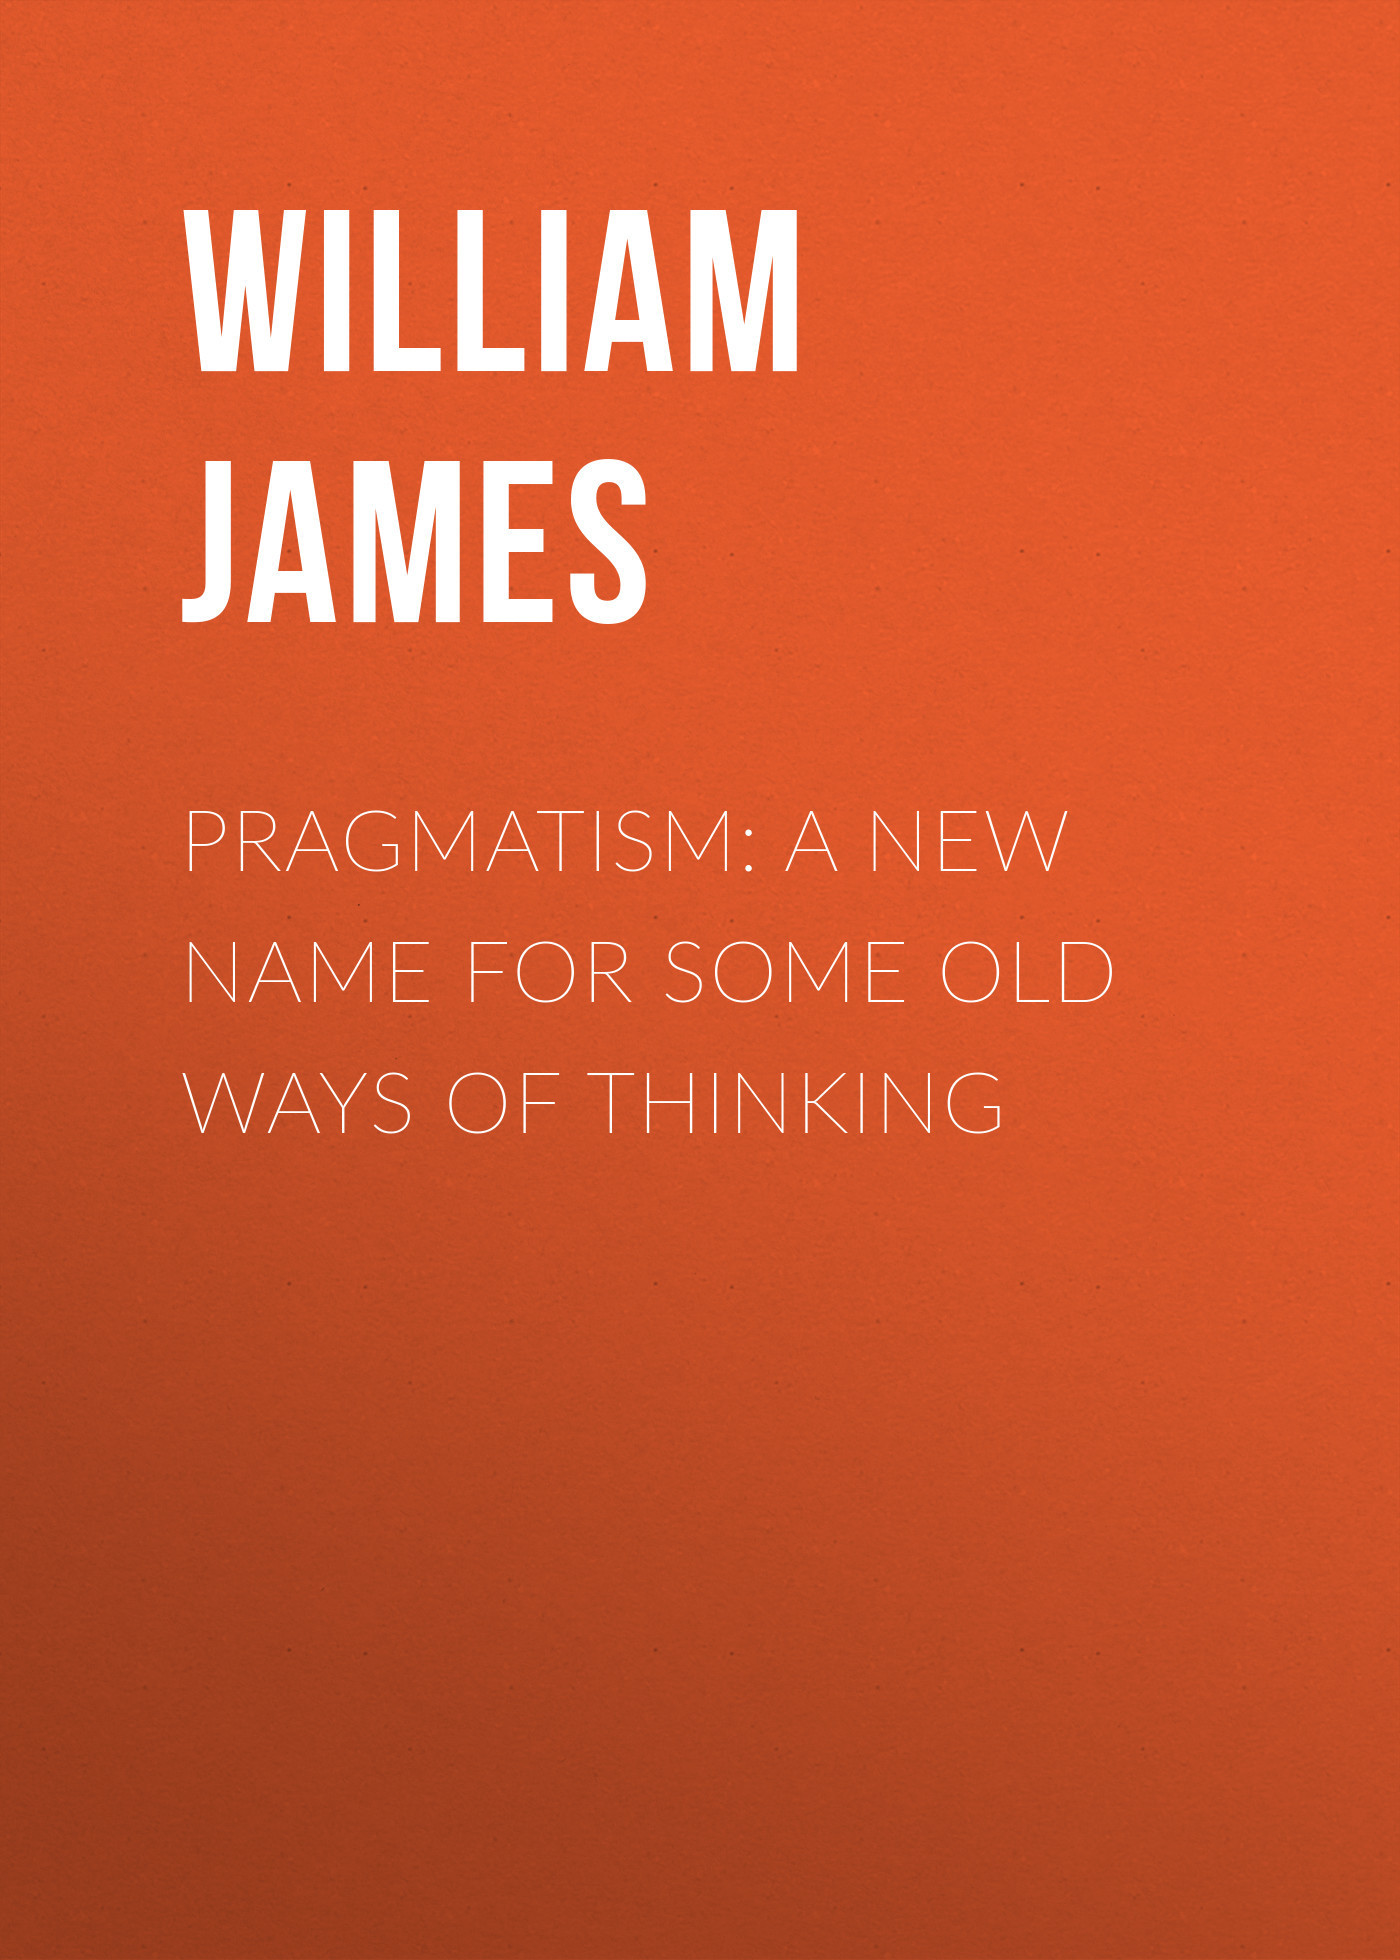 William James Pragmatism: A New Name for Some Old Ways of Thinking 2 secs wood handle spinning fishing rod 1 98m 2 1m 2 4m power ml m mh carbon lure rods vara de pesca peche stick fishingtackle